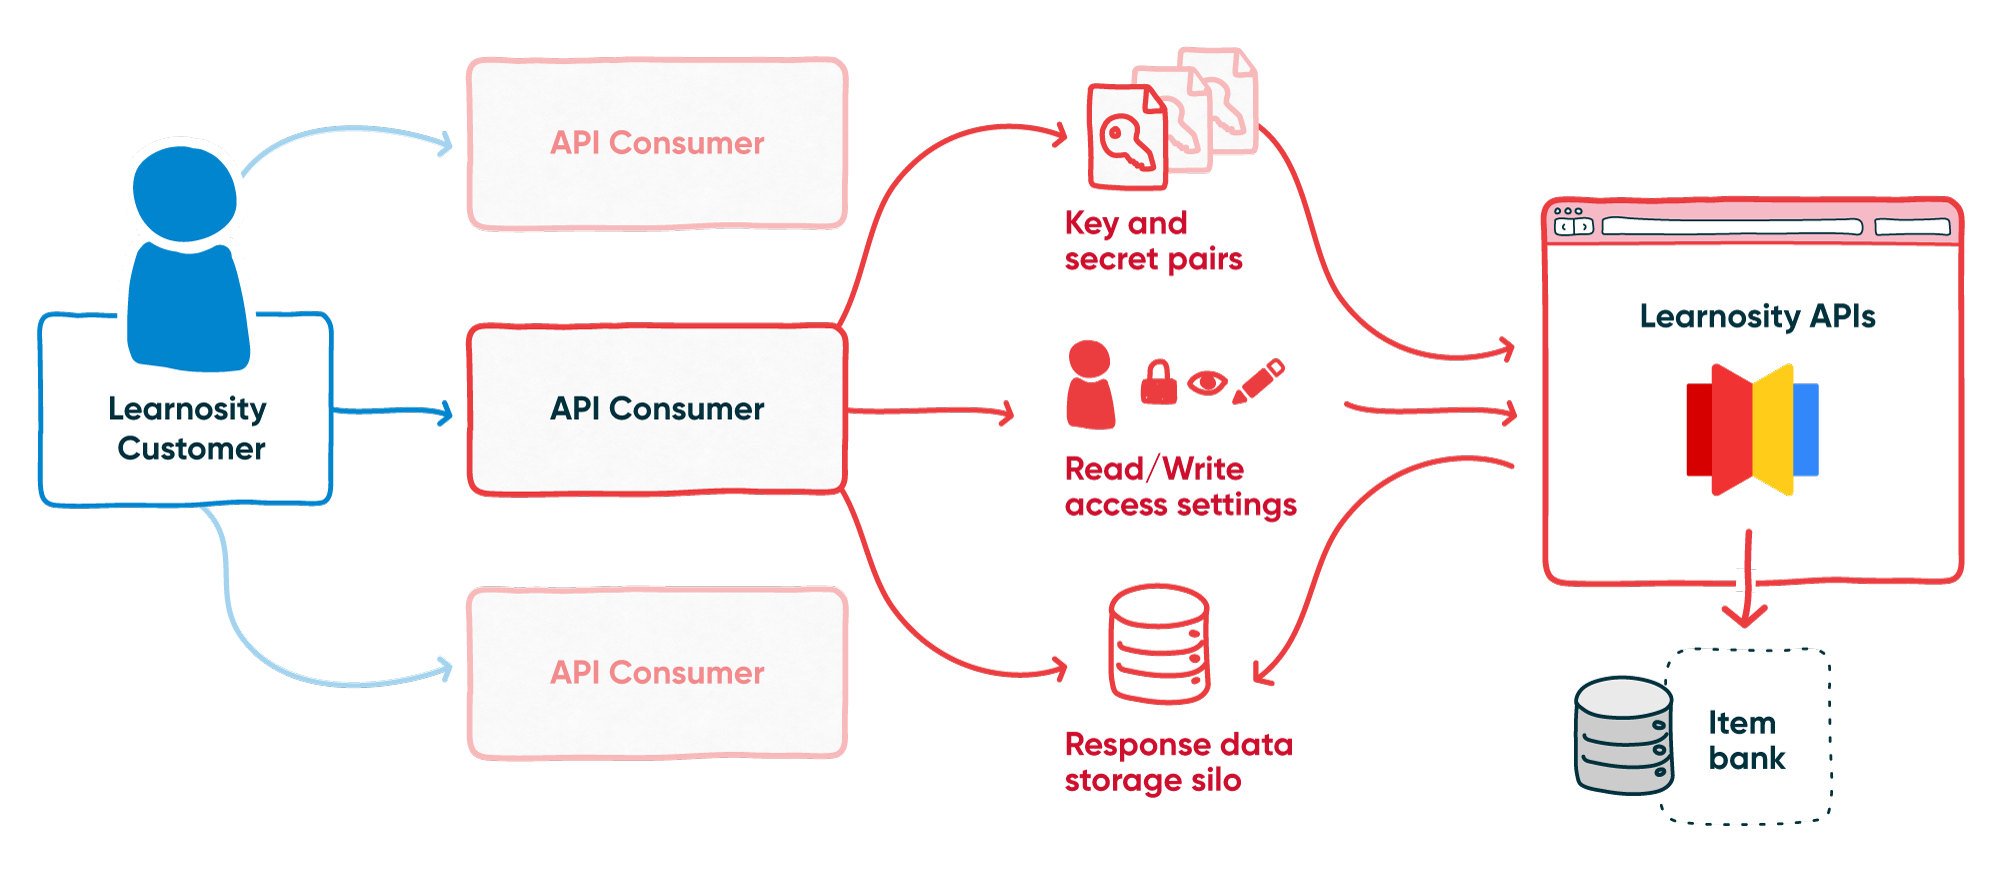 DES-1041_API-Consumers-and-Conceptual-Overview-Diagrams.png